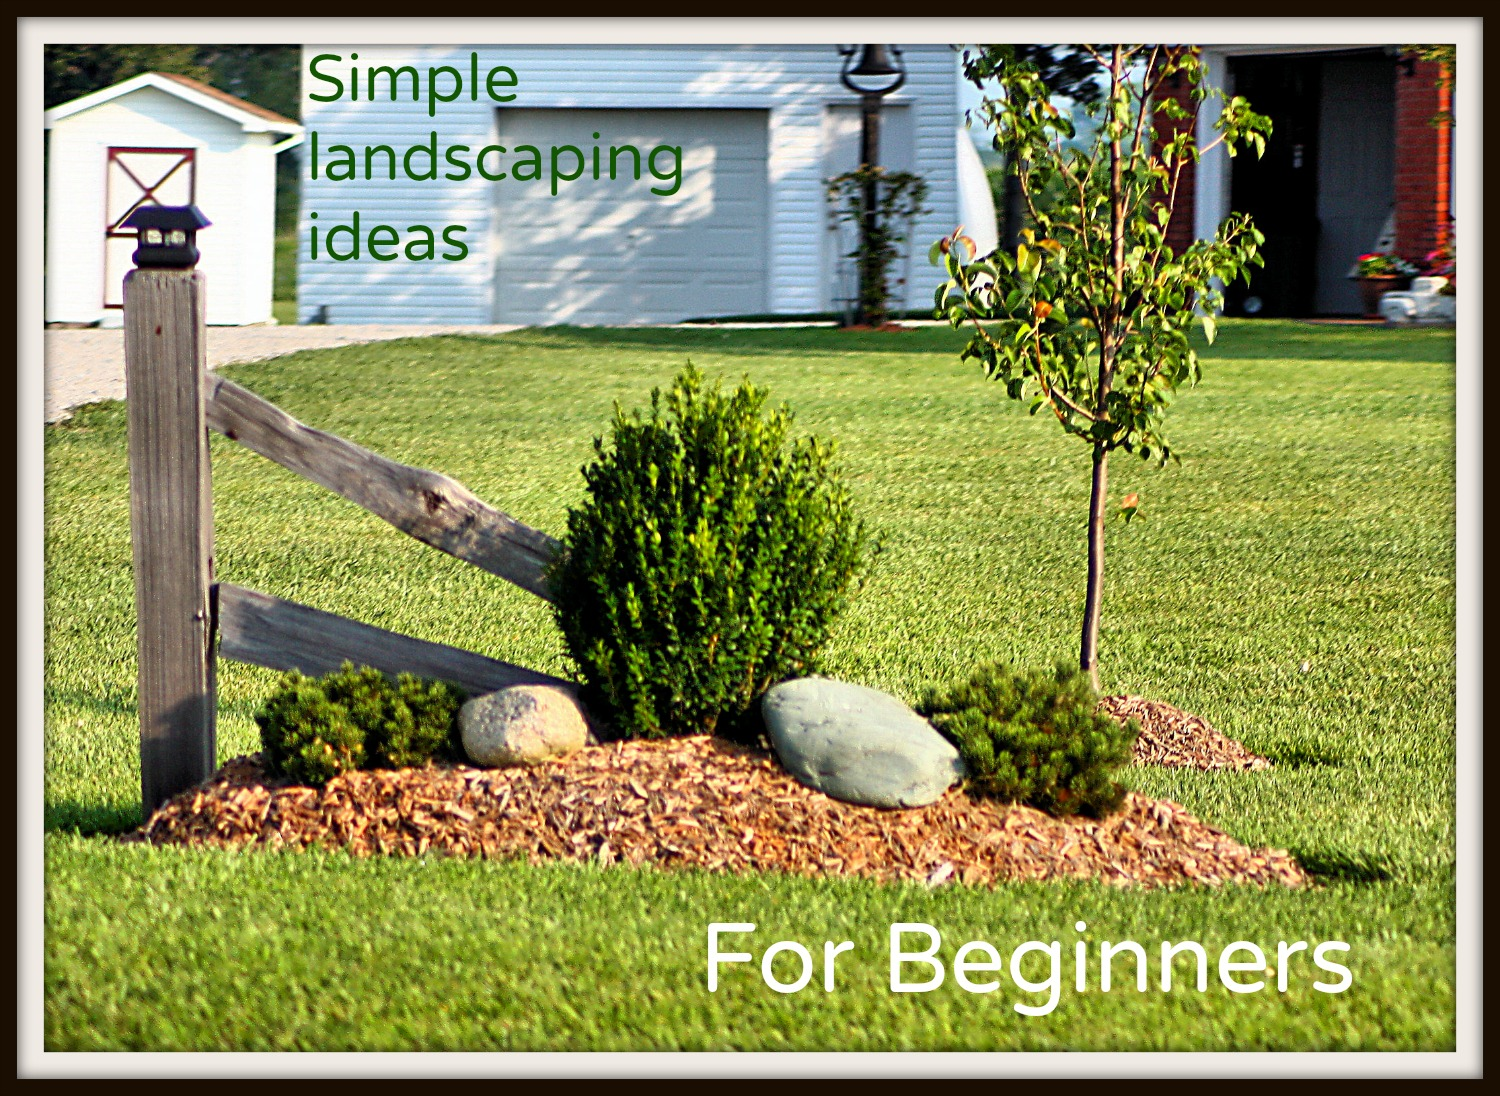 Simple landscaping ideas for beginners frador for Basic landscape design